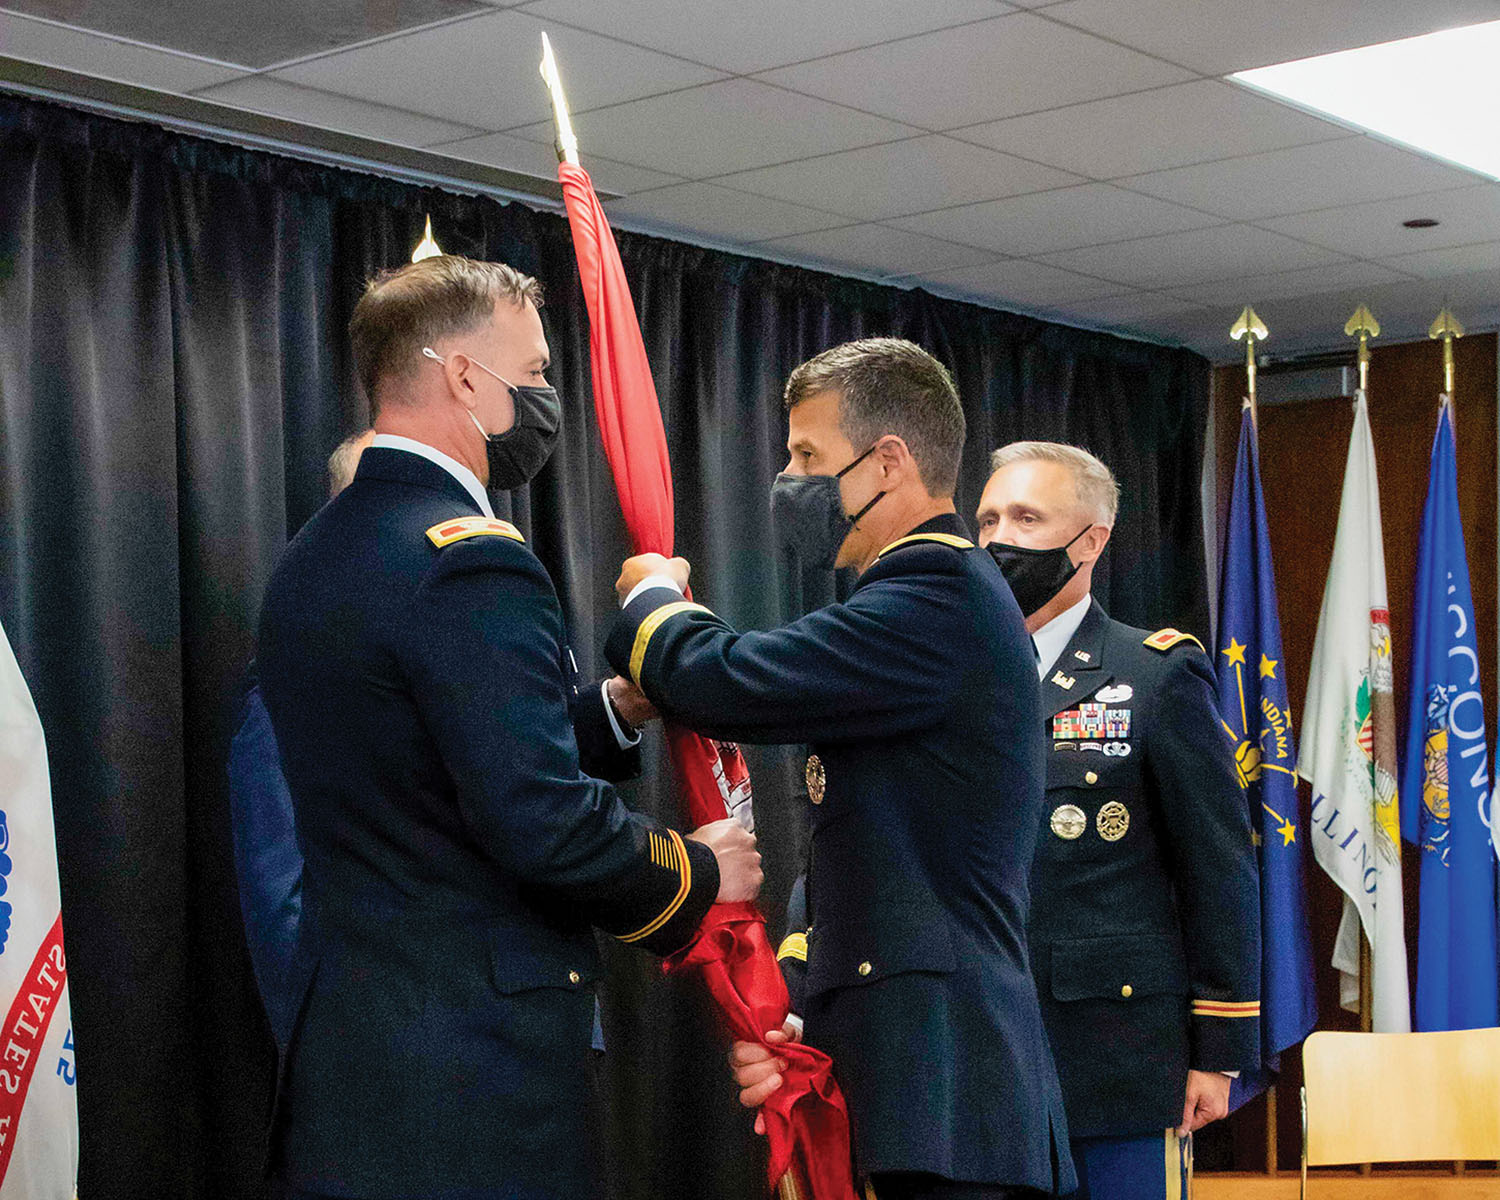 Col. Paul Culberson accepts command flag. (Photo by George Gonzalez, courtesy of Chicago Engineer District)